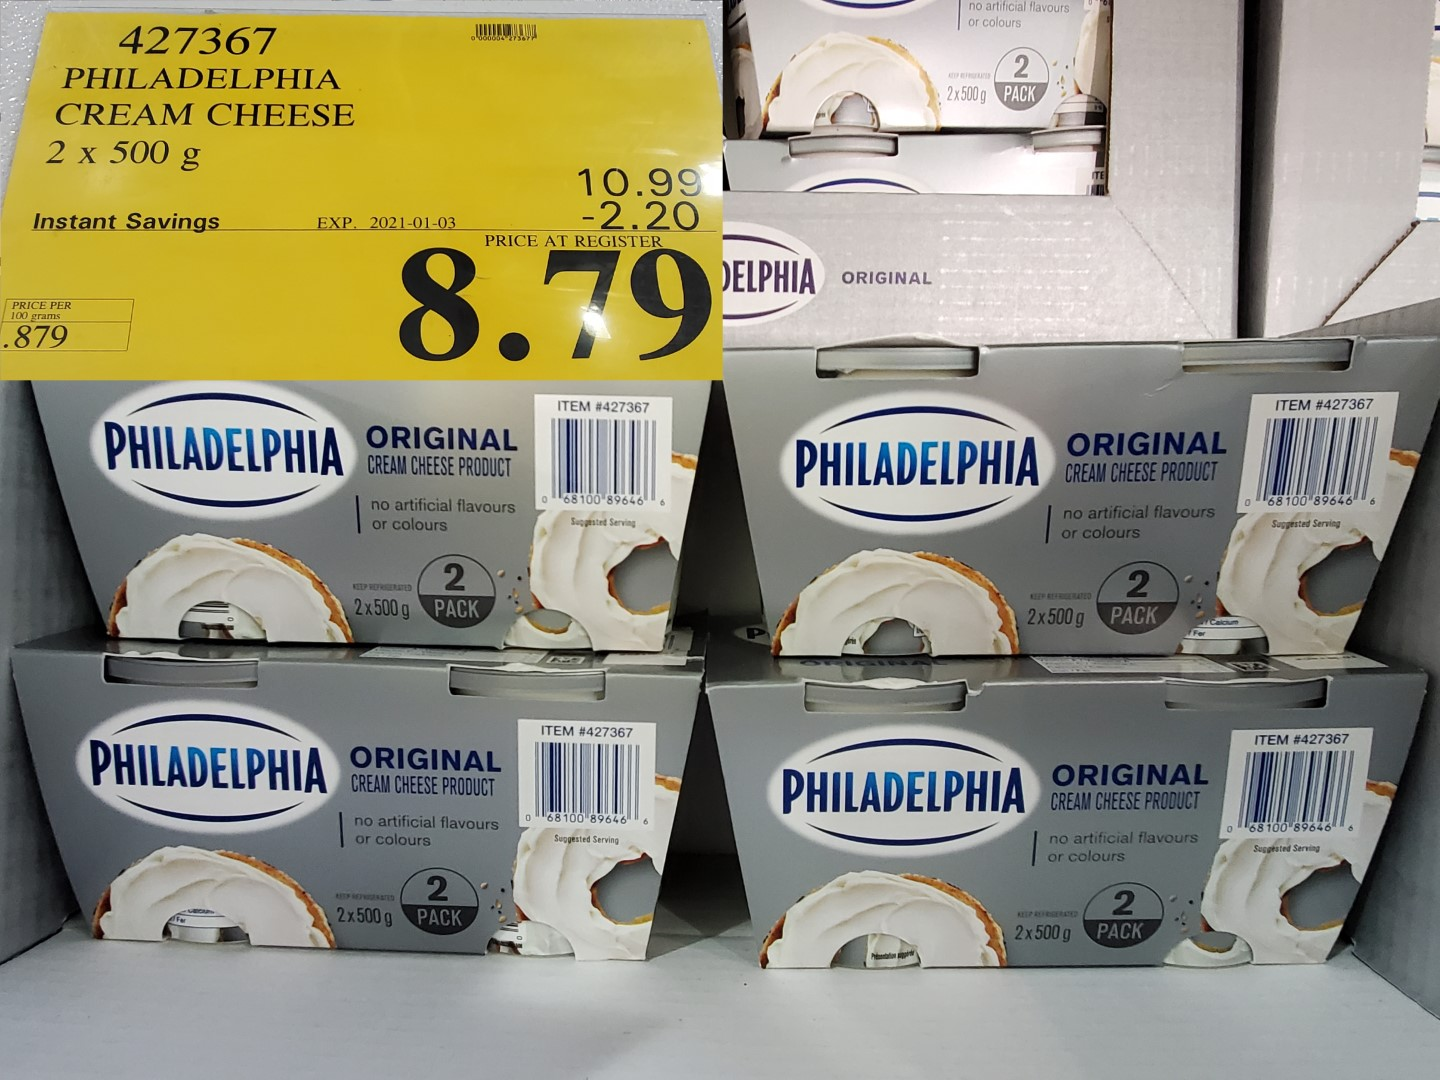 philedelphia cream cheese